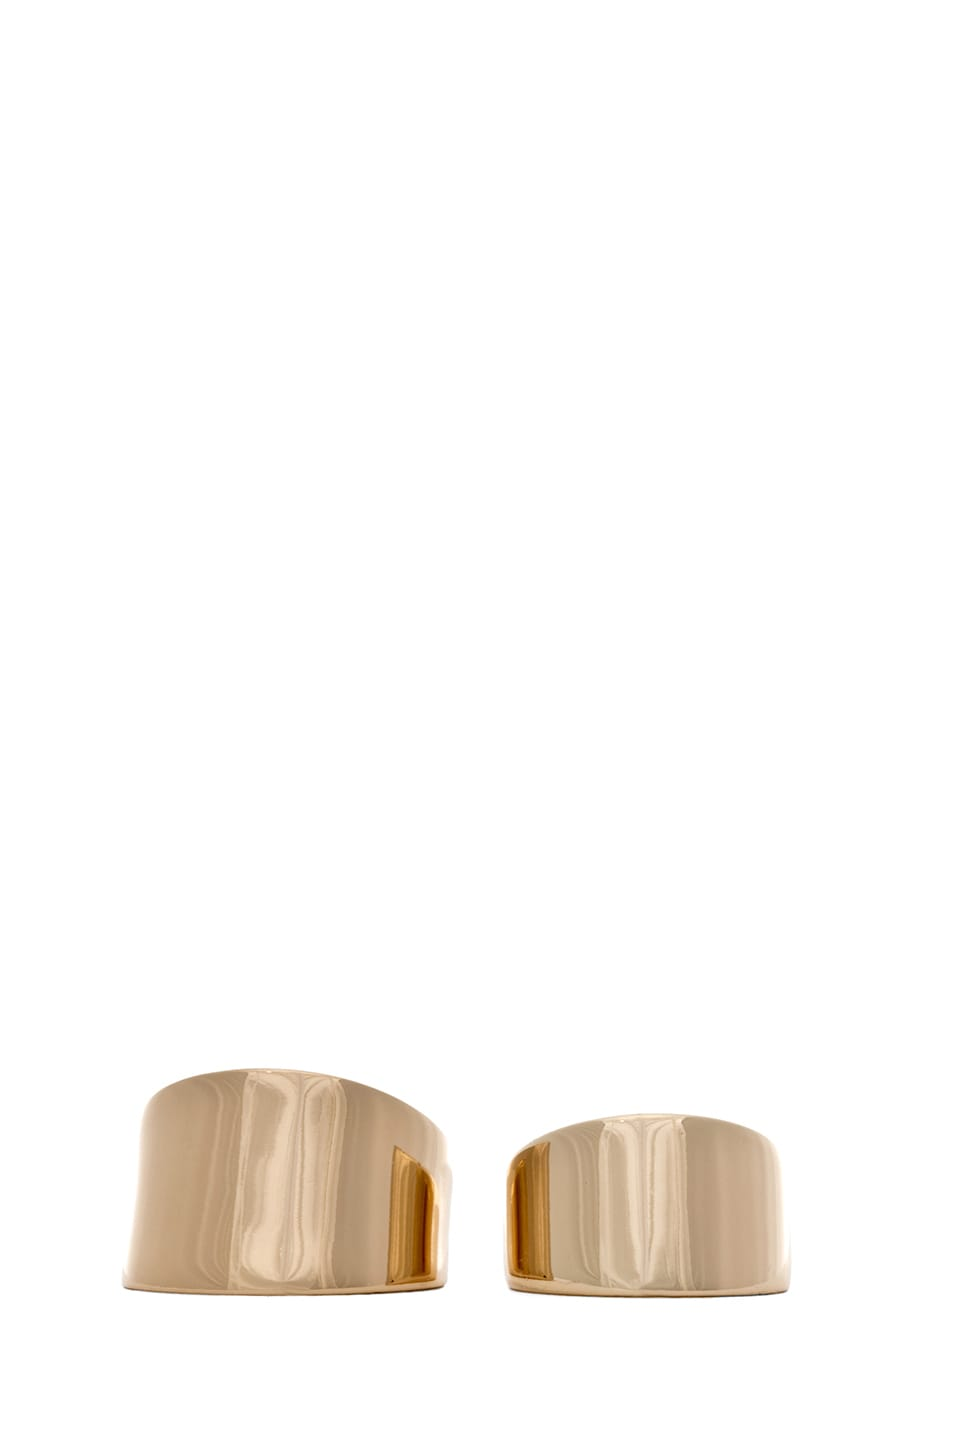 Image 1 of Maison Margiela Set of 2 Rings in Gold